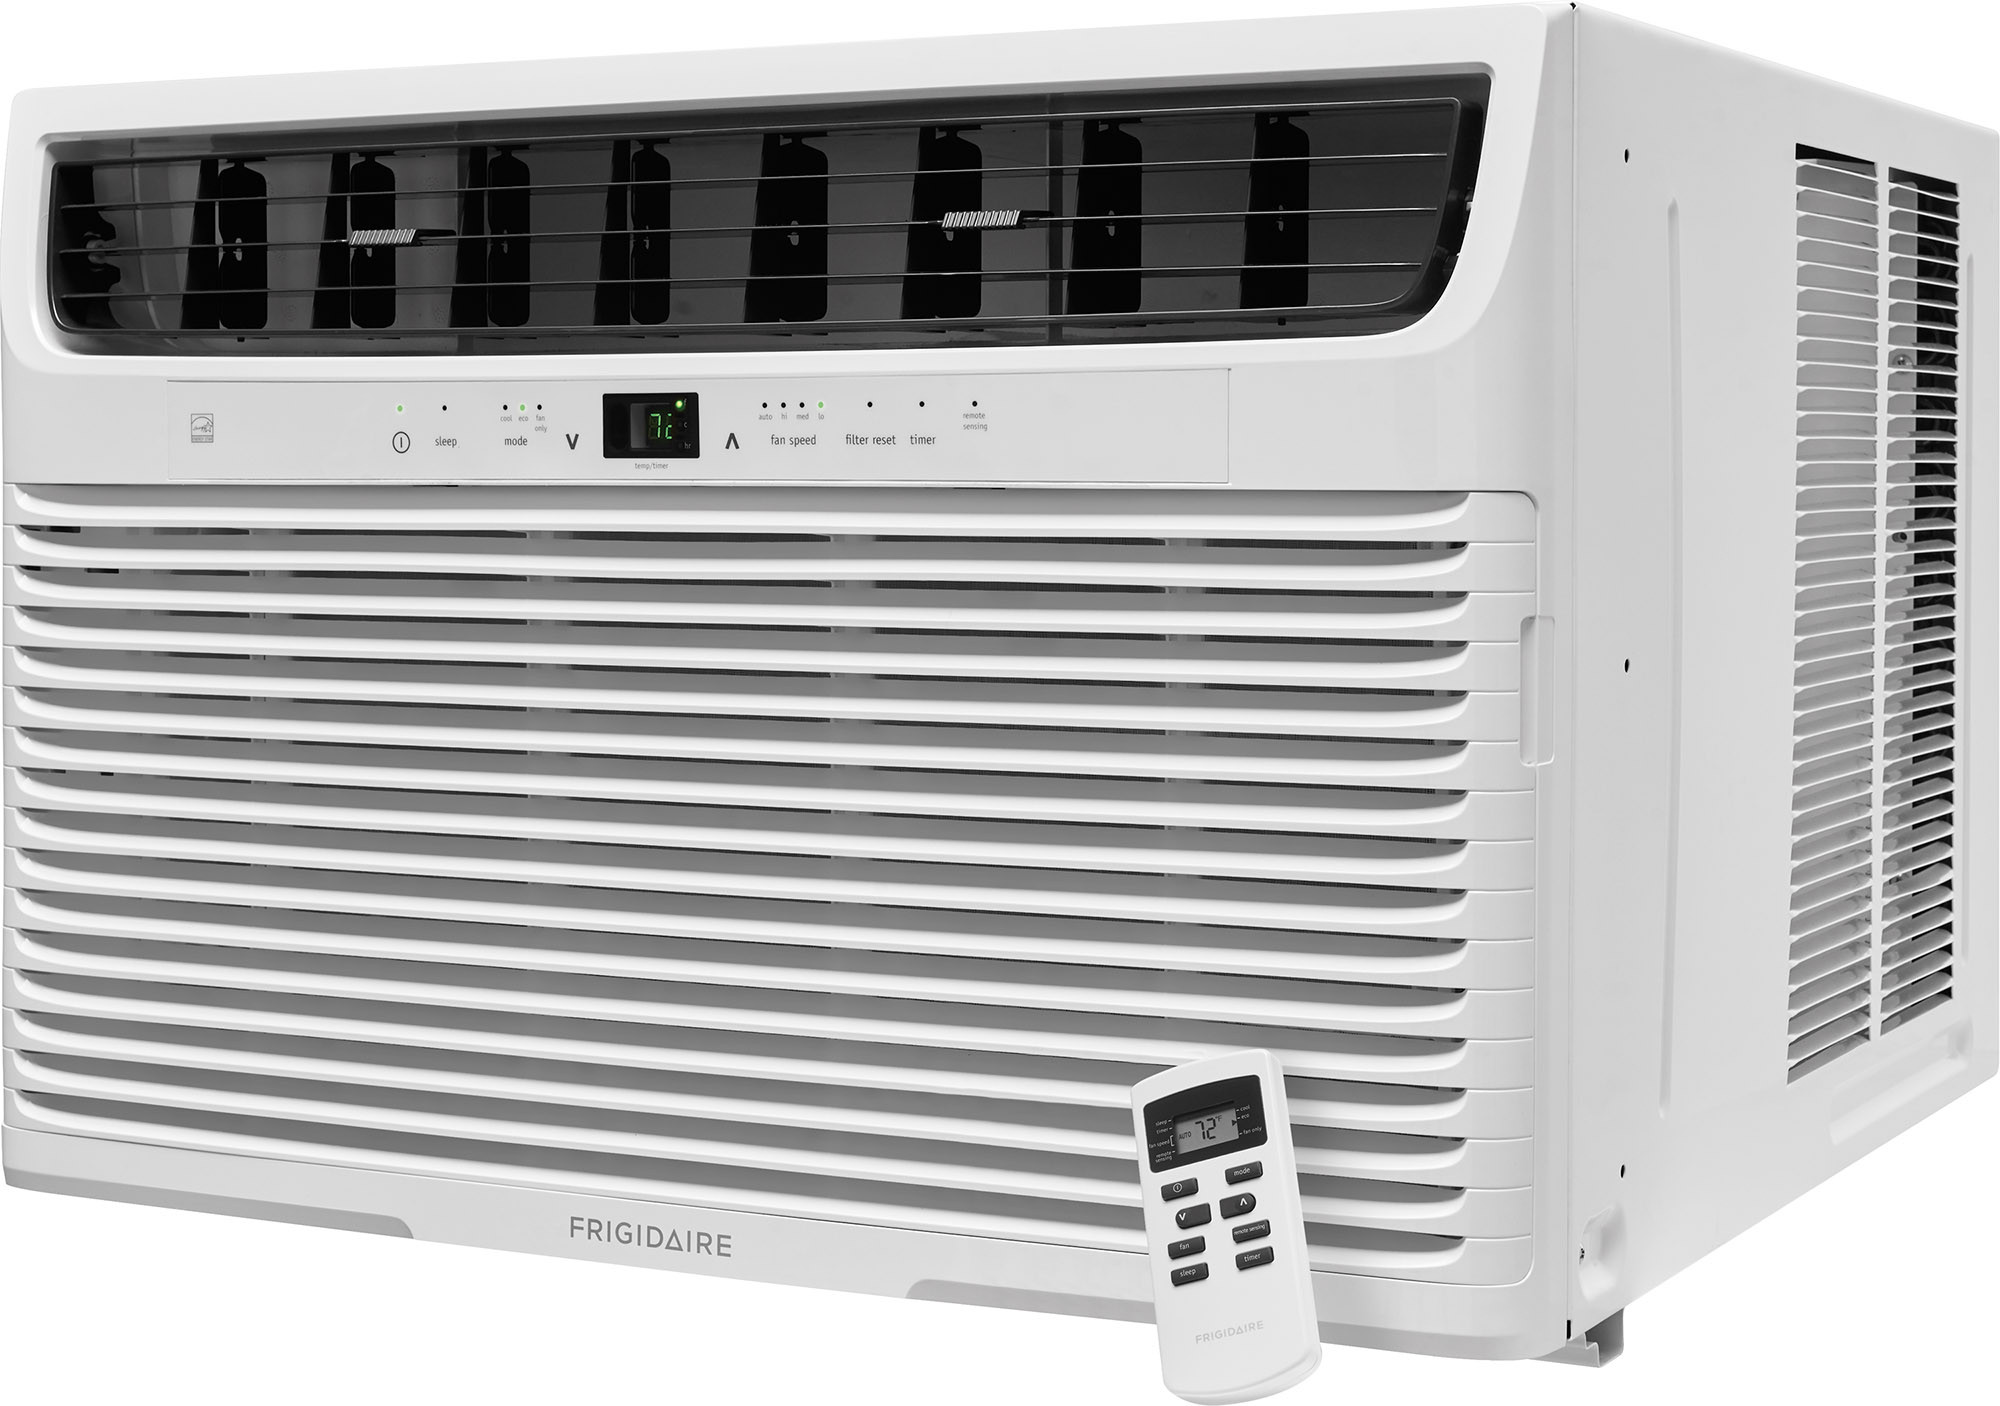 Frigidaire Ffre2233u2 Window Air Conditioner Frigidaire Air